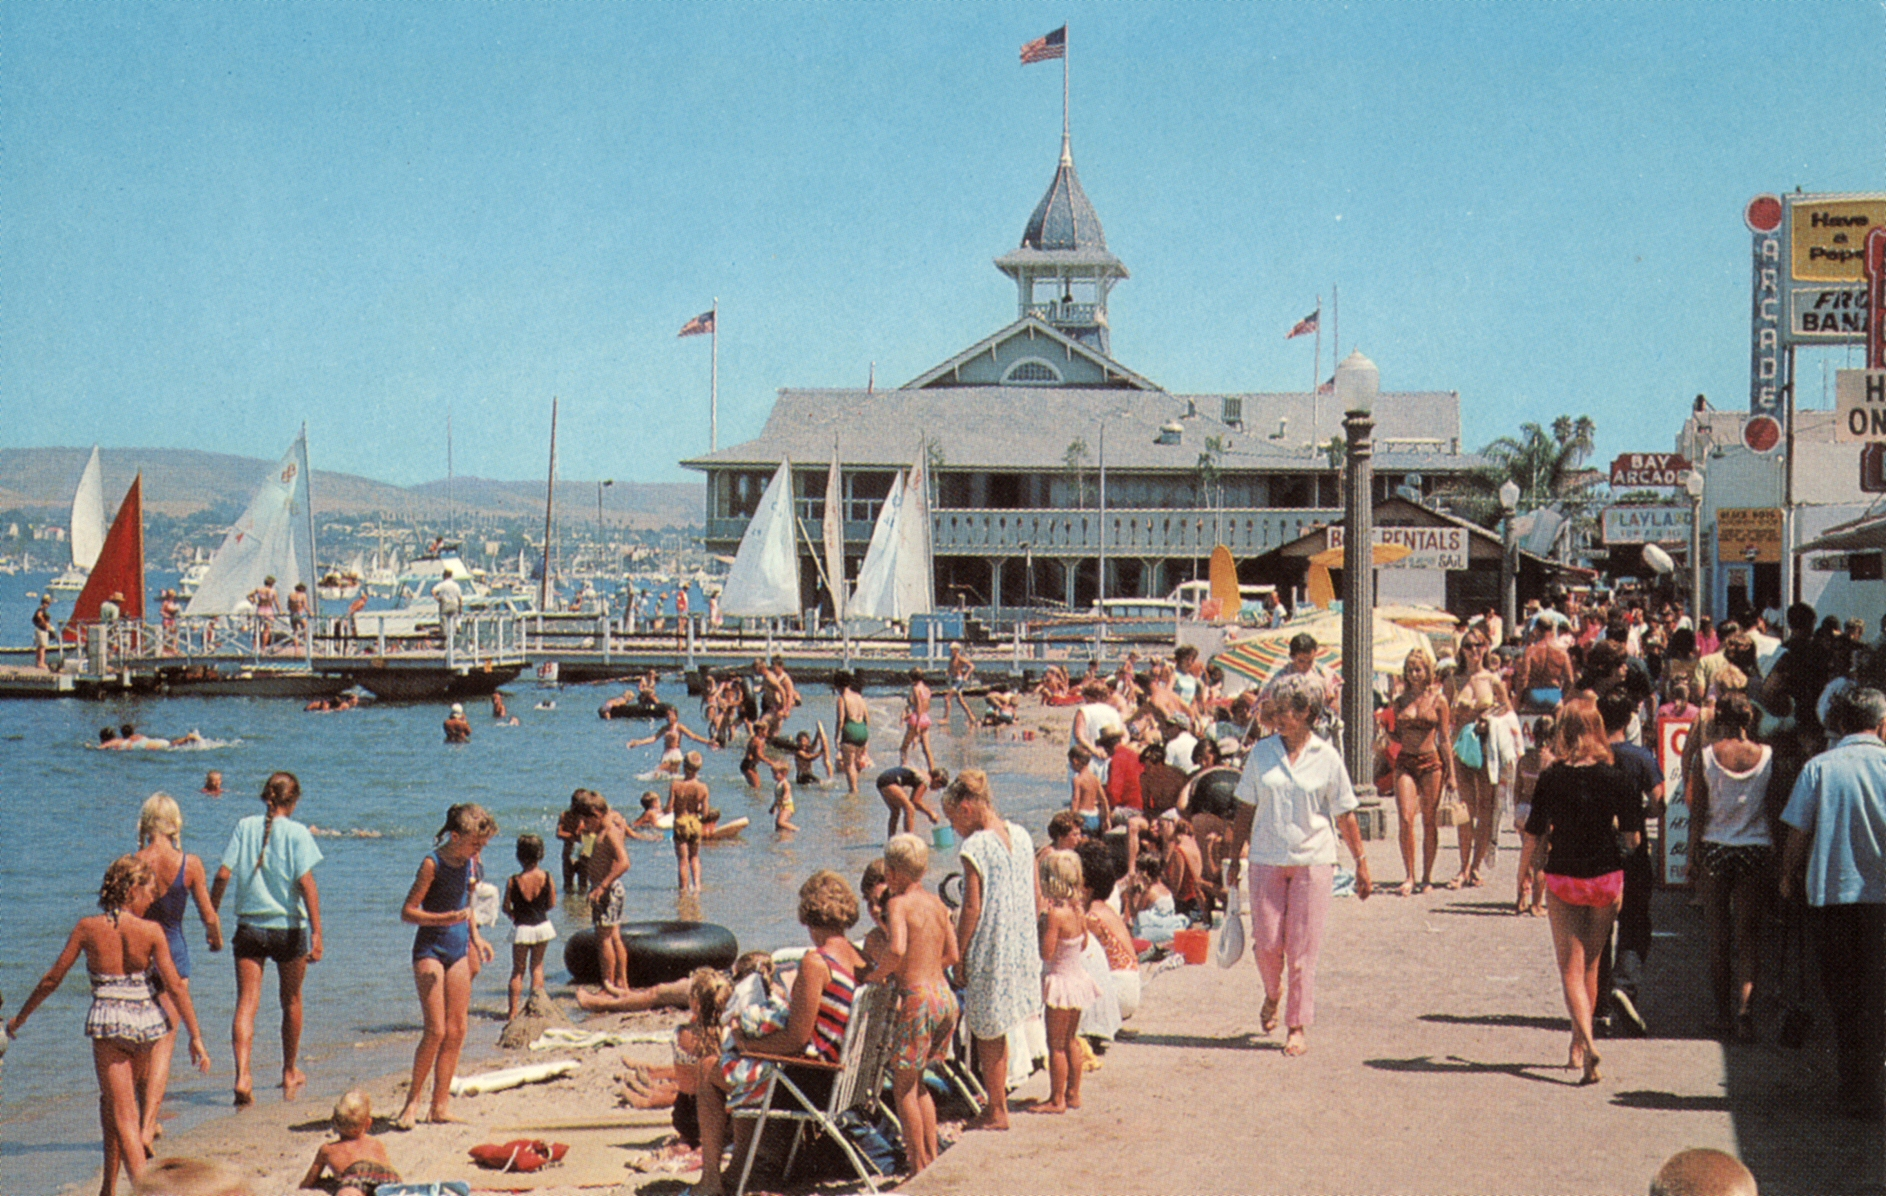 Balboa Fun Zone and balboa Pavillion